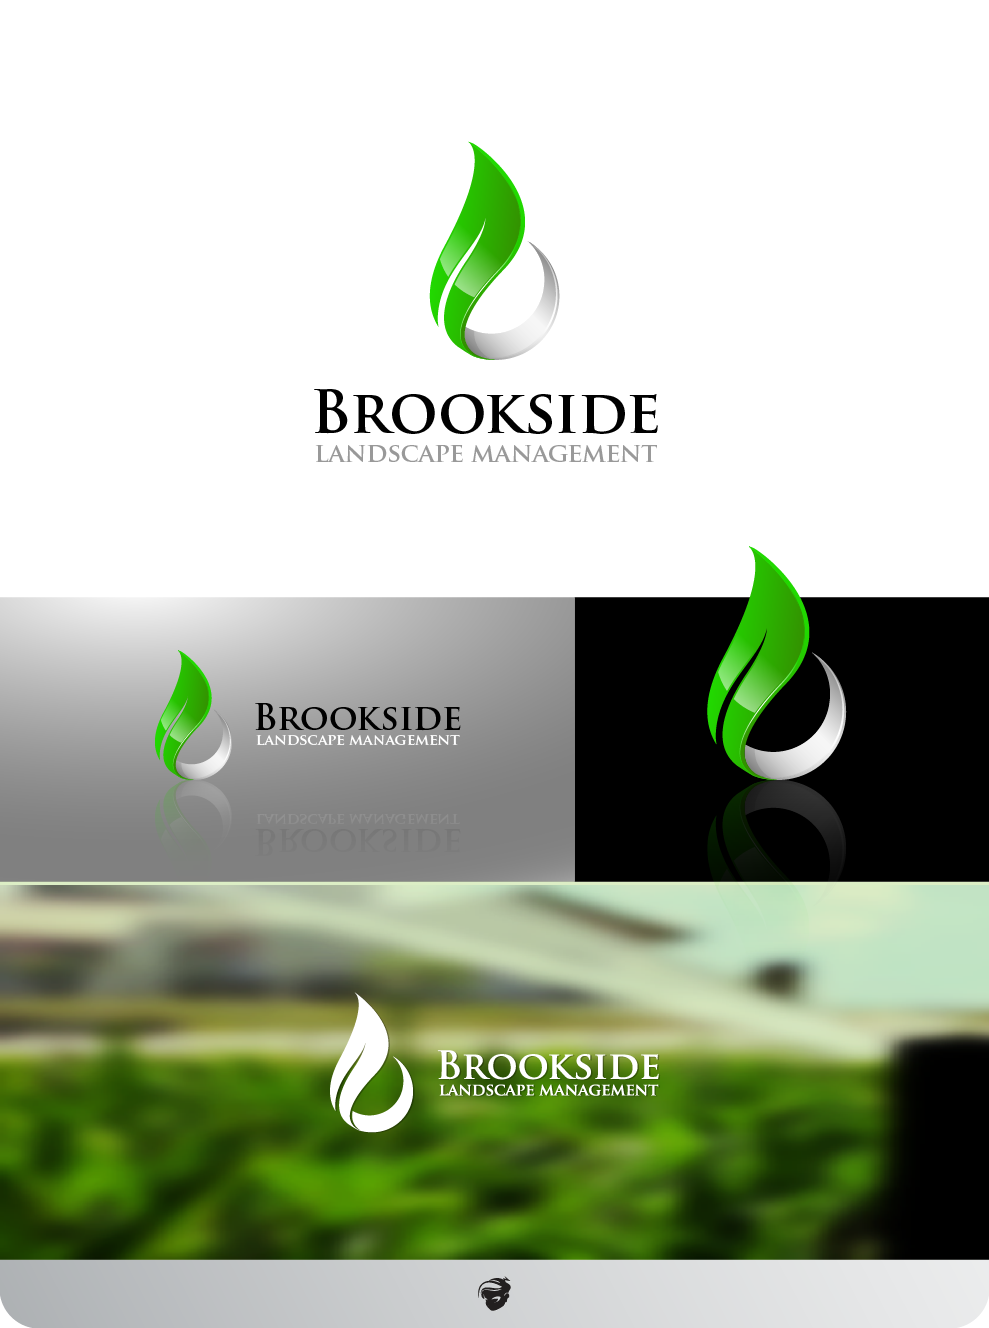 Logo Design by zesthar - Entry No. 179 in the Logo Design Contest New Logo Design for Brookside Landscape Management.